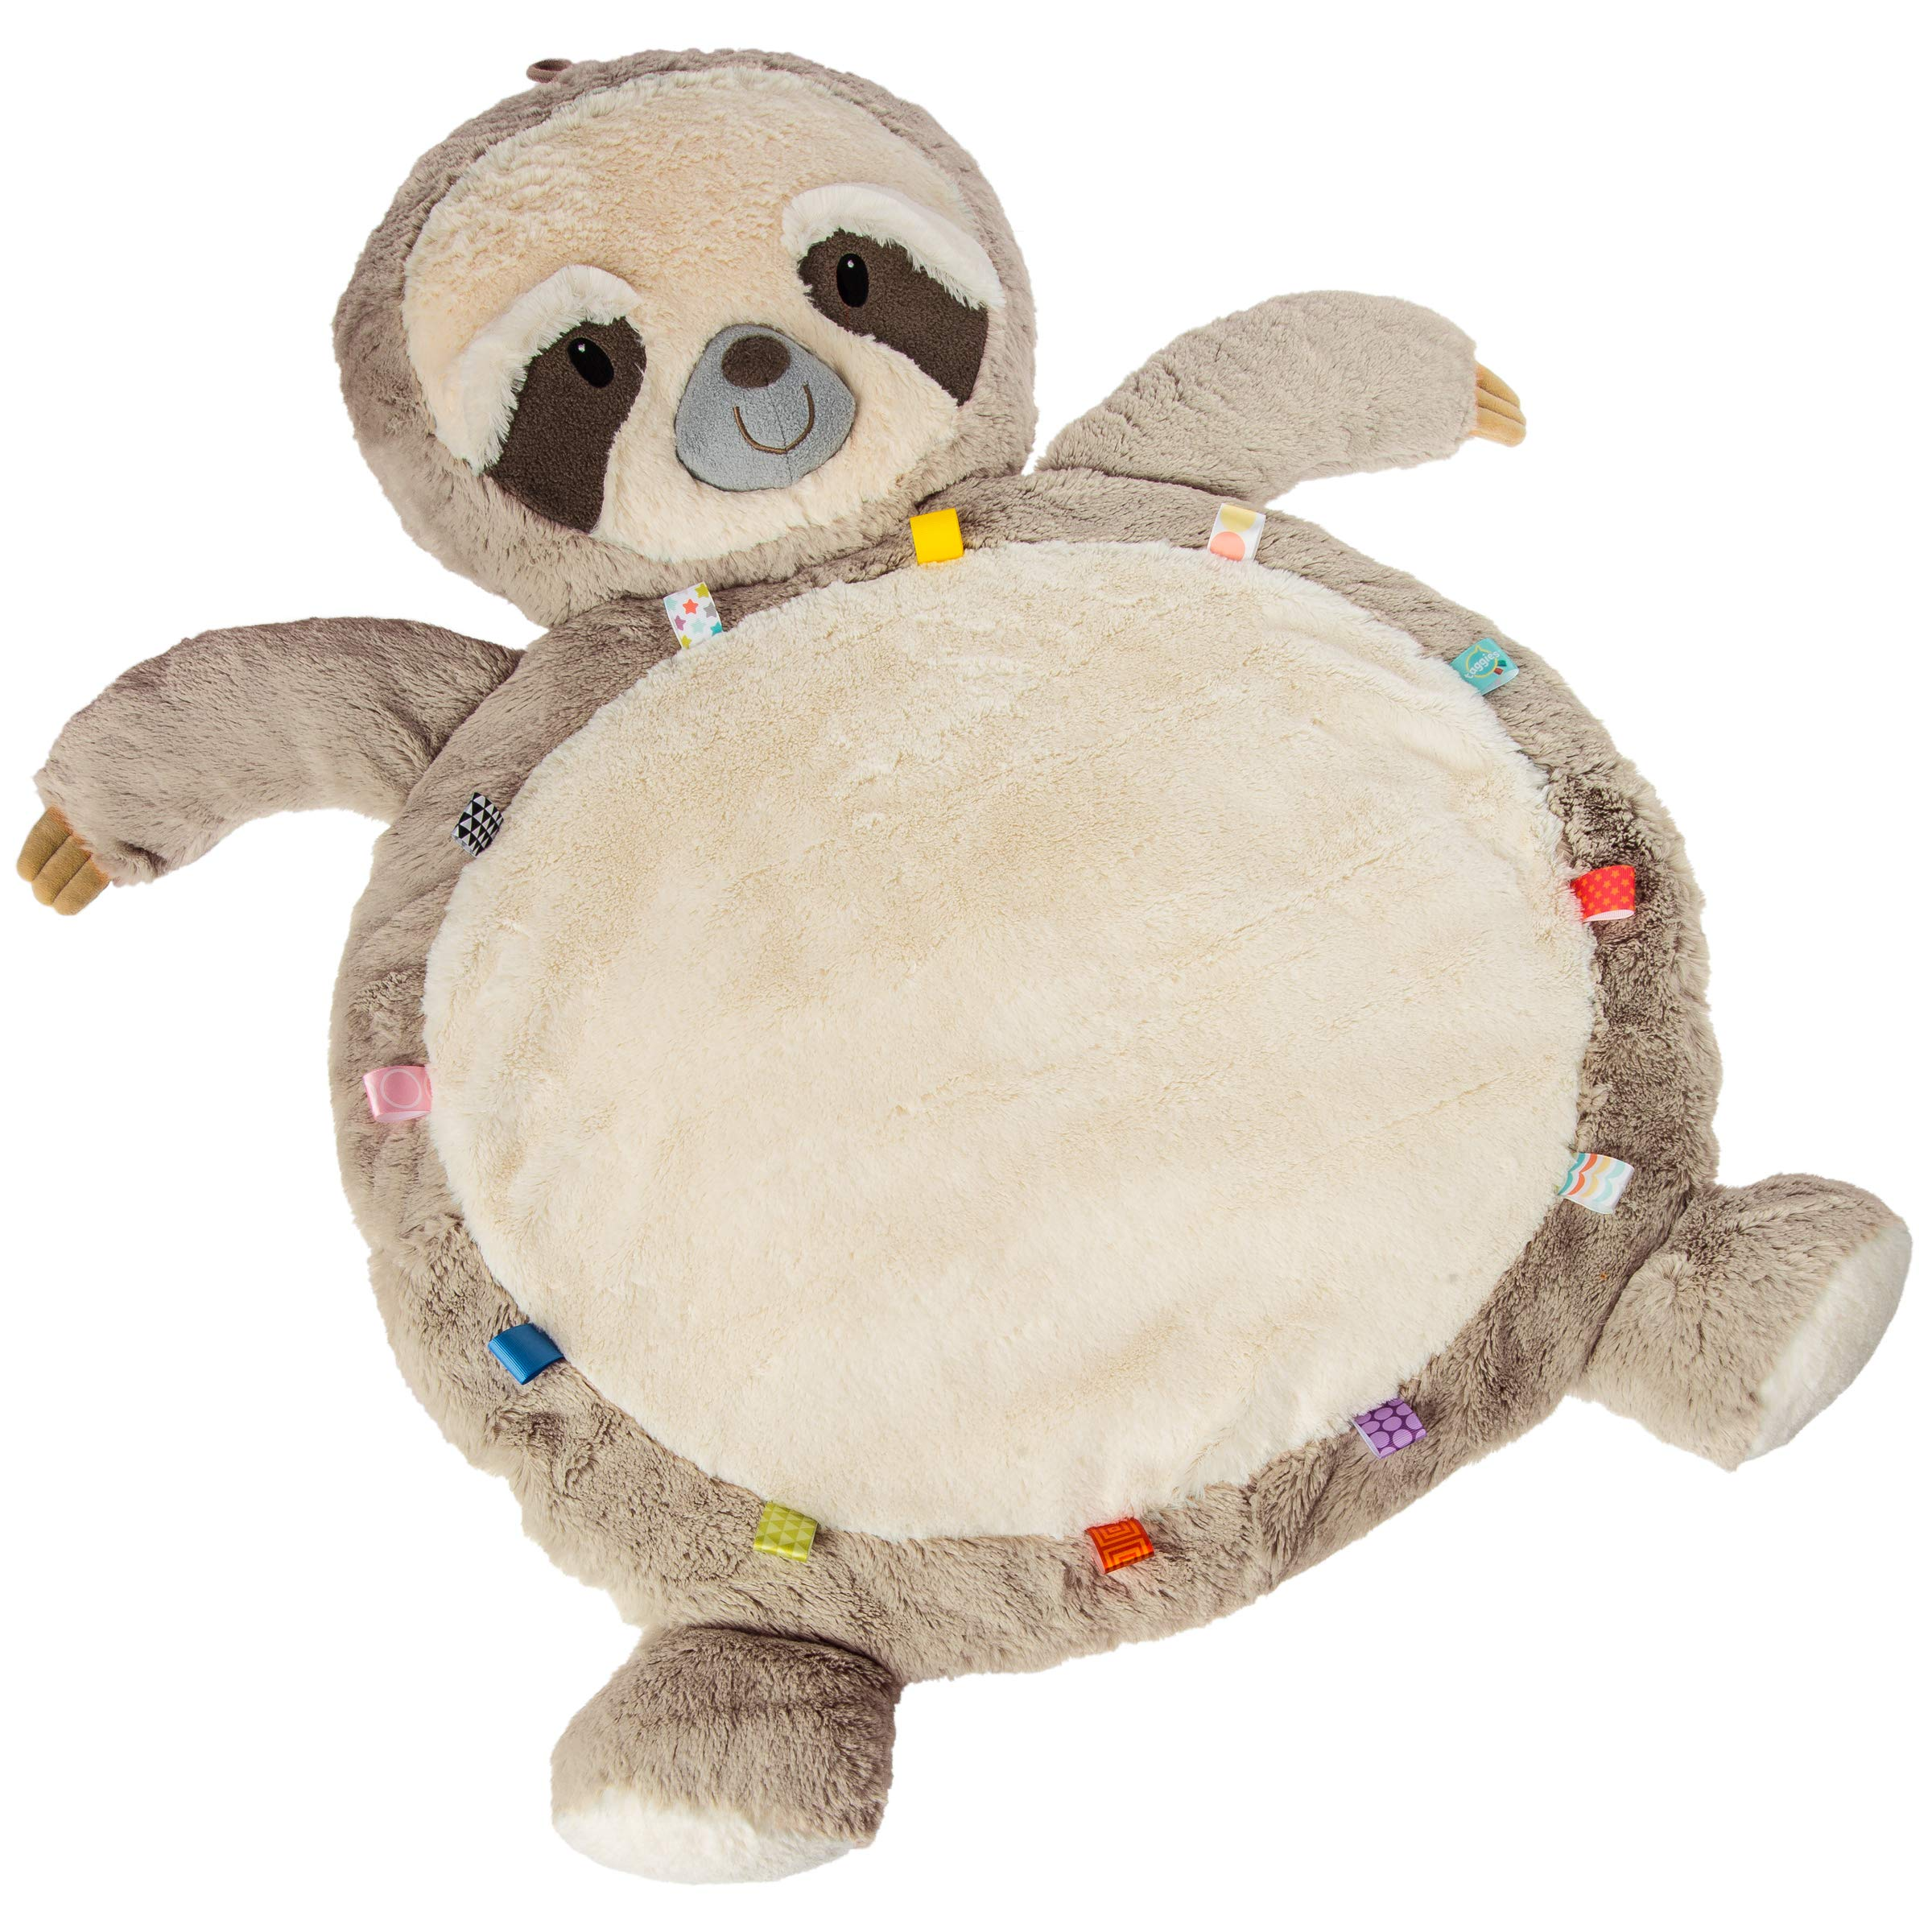 Taggies Super Soft Baby Mat, Molasses Sloth, 31 x 23-Inches by Taggies